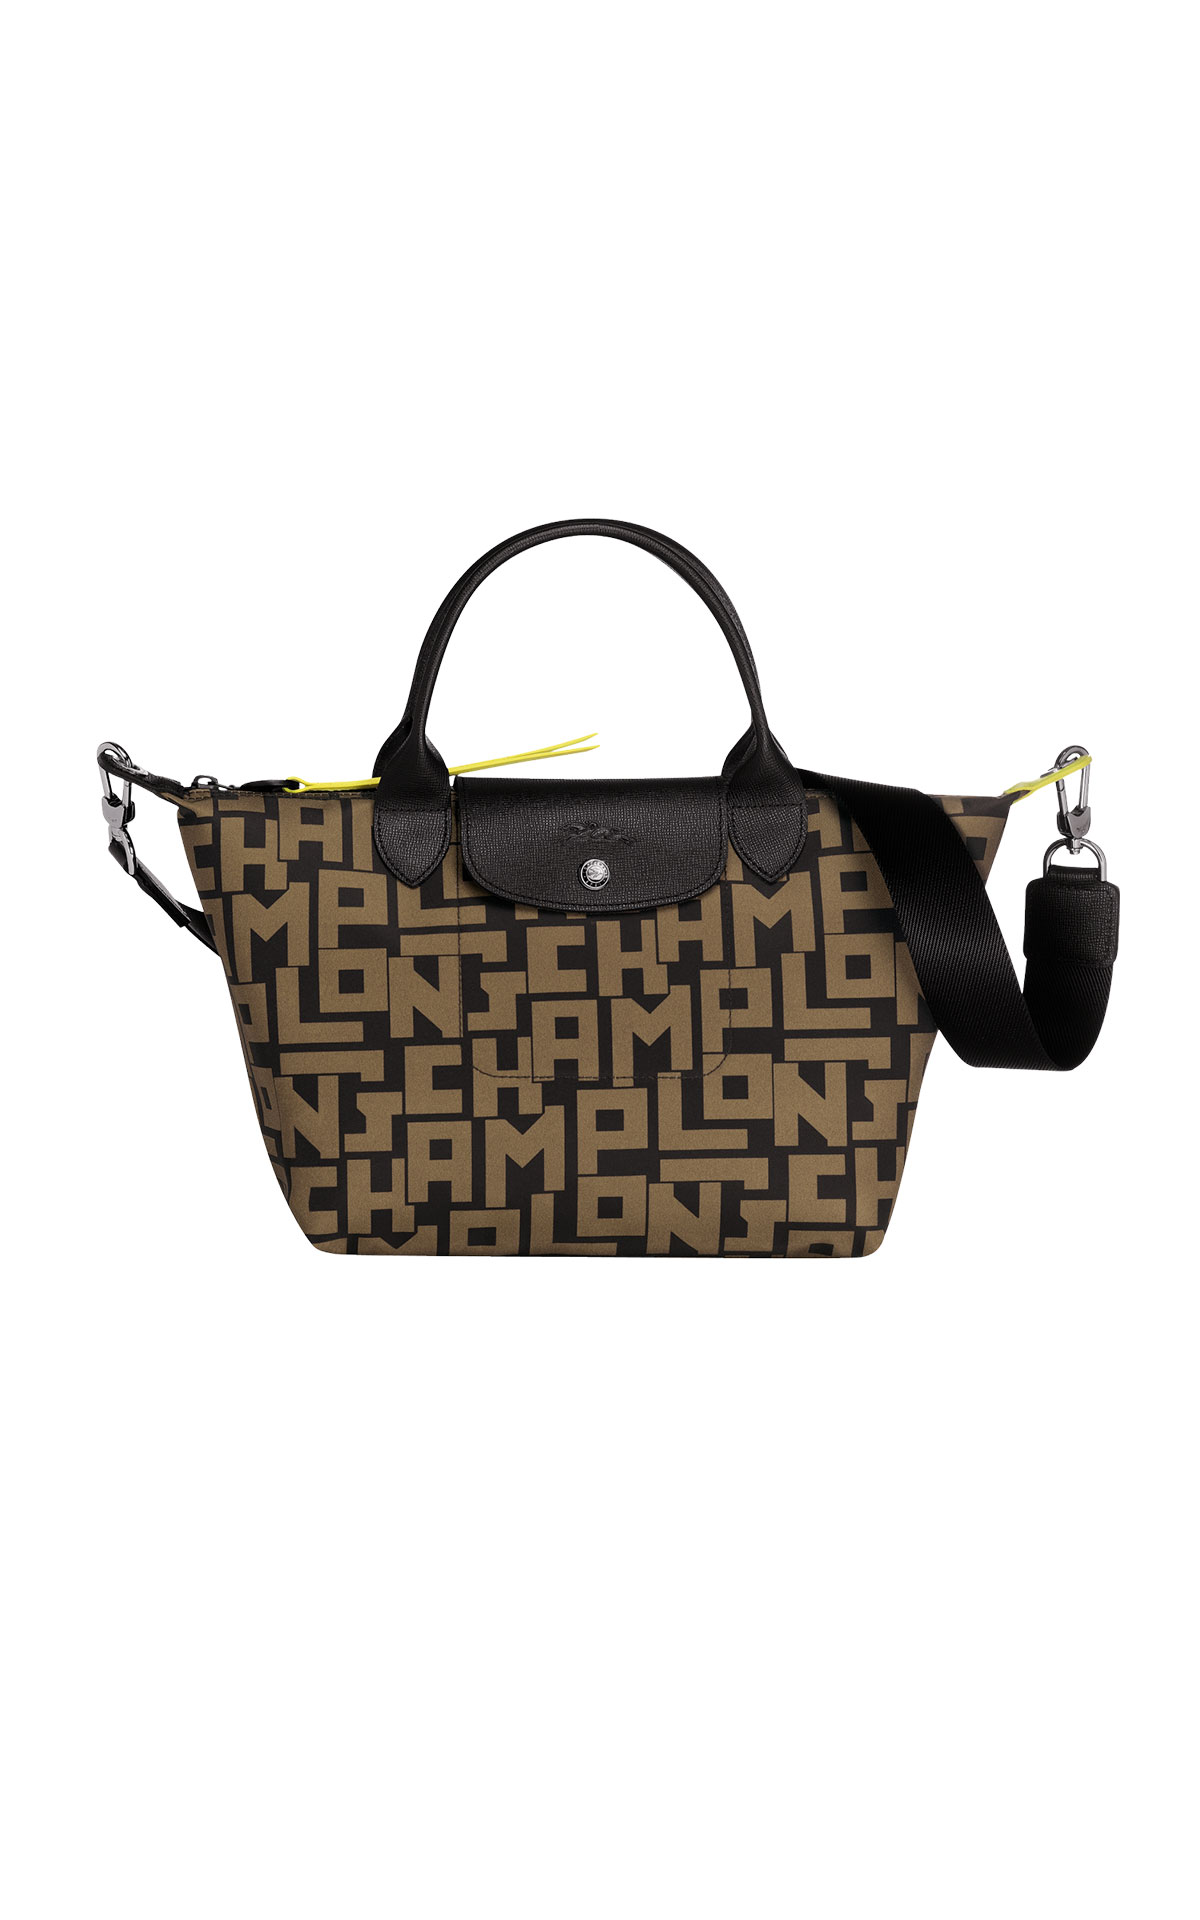 Black Pliage bag with khaki logo Longchamp